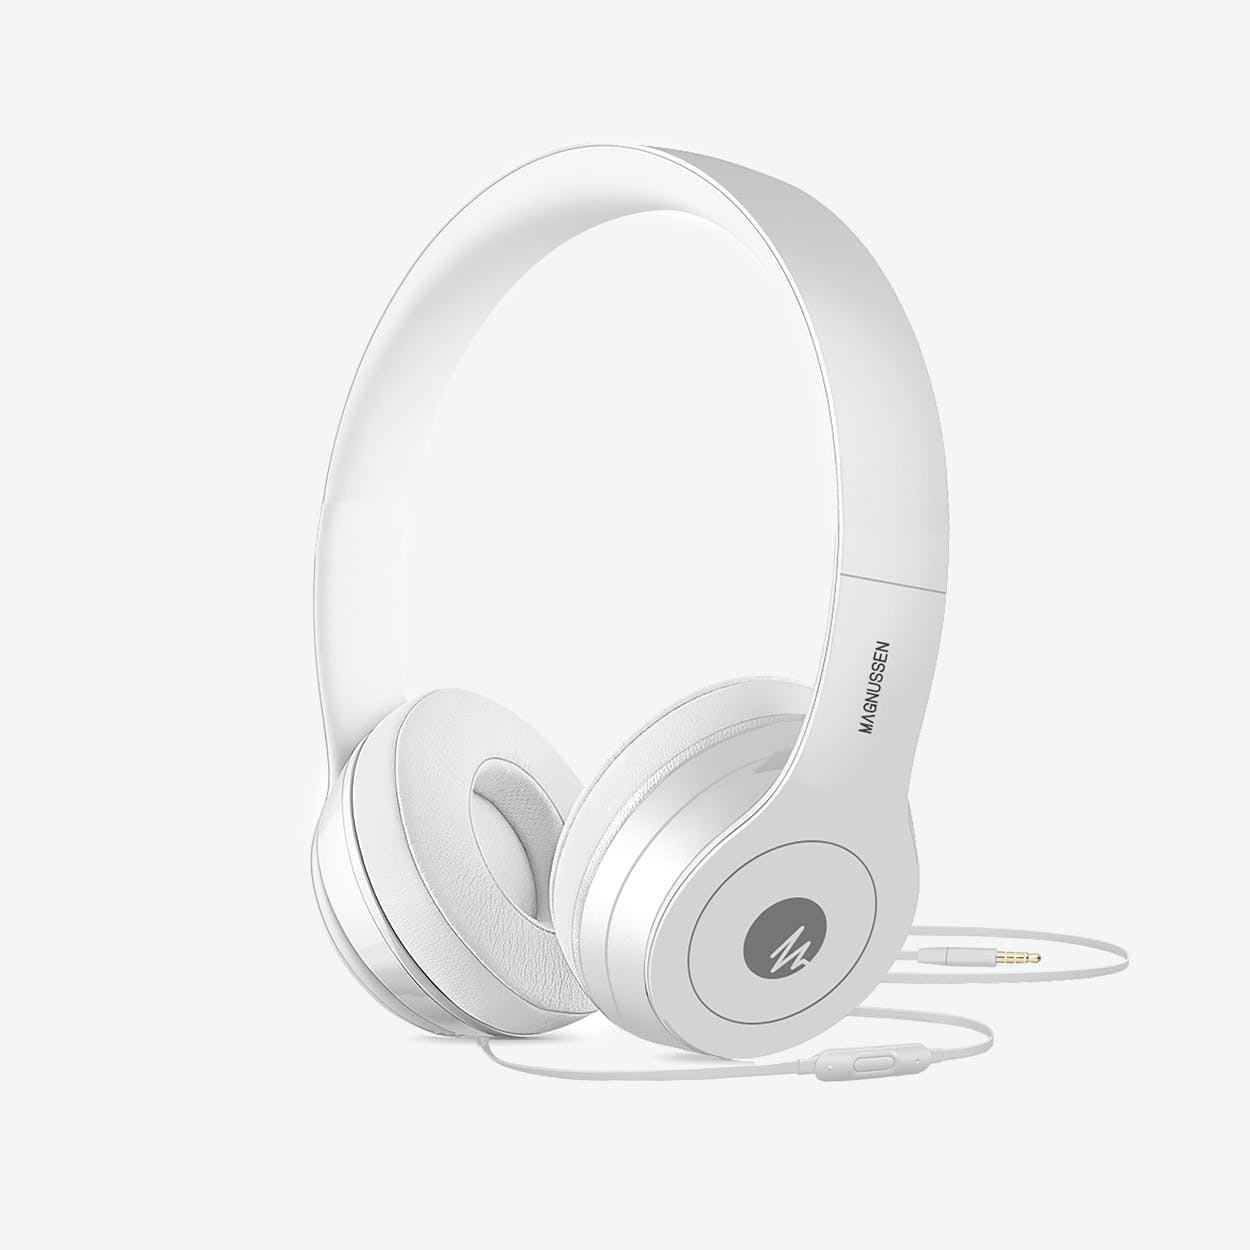 MAGNUSSEN W1 Headphones in Gloss White